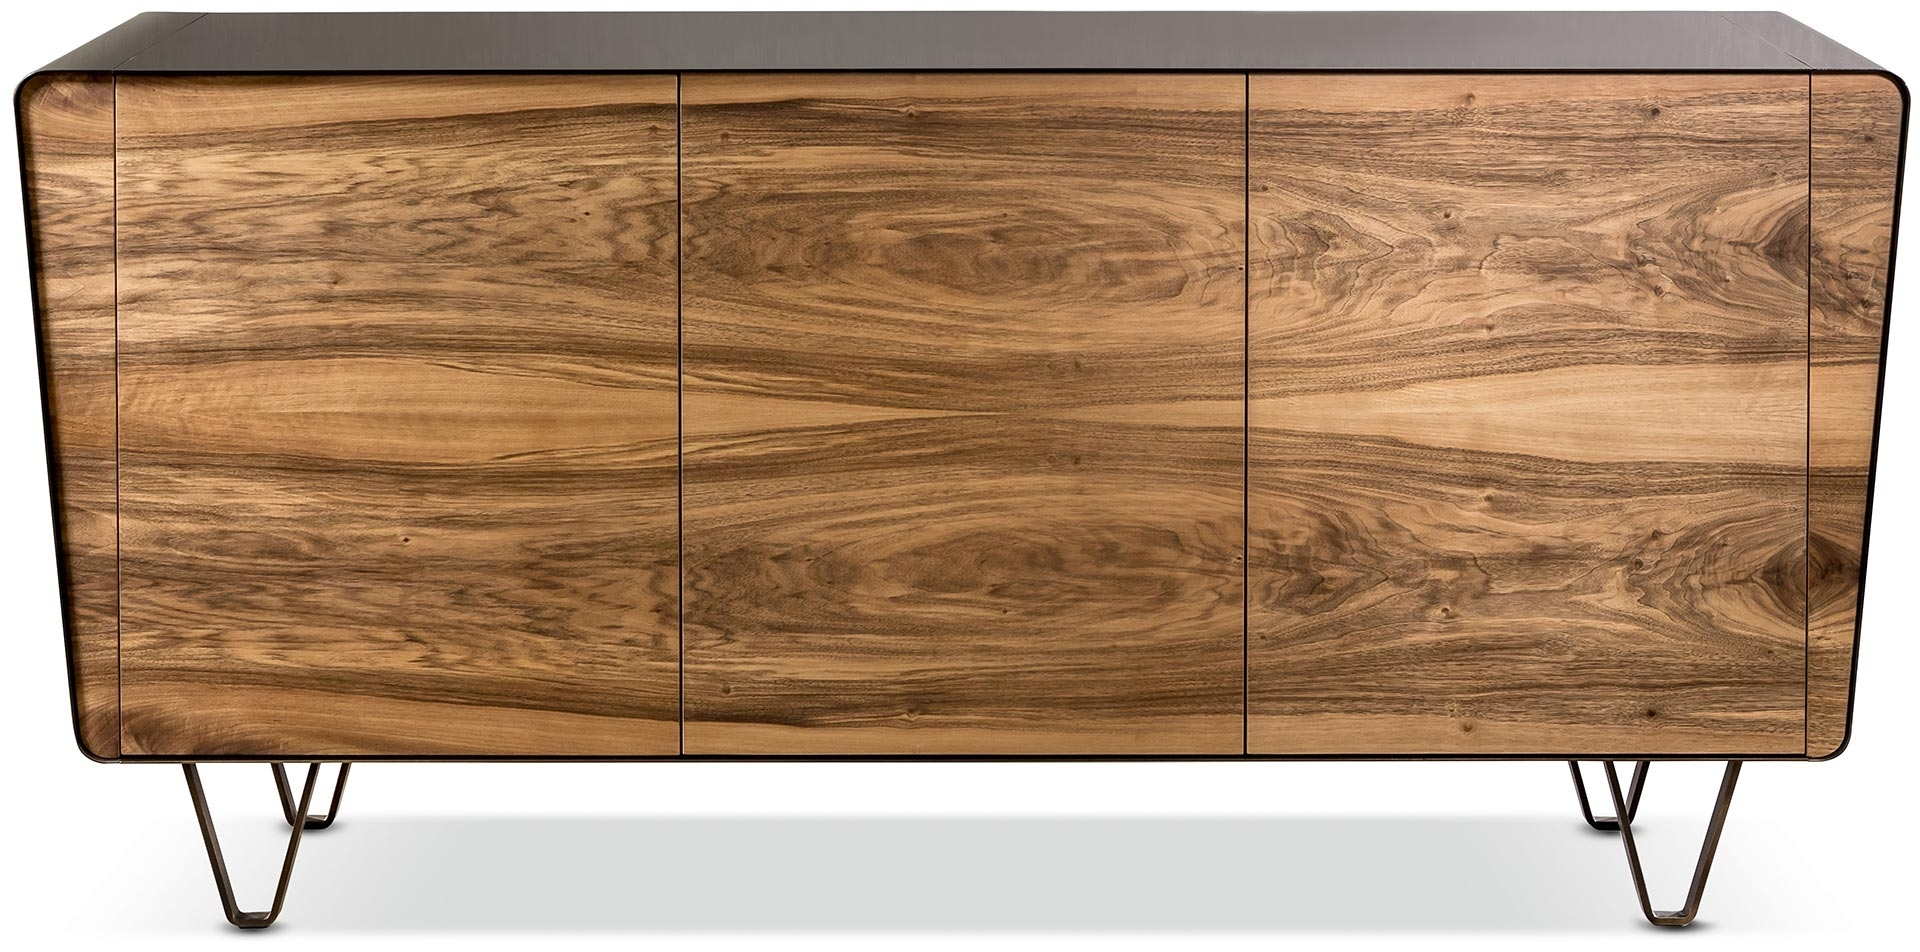 Icaro Sideboard - Cantori pertaining to Vintage Finish 4-Door Sideboards (Image 13 of 30)